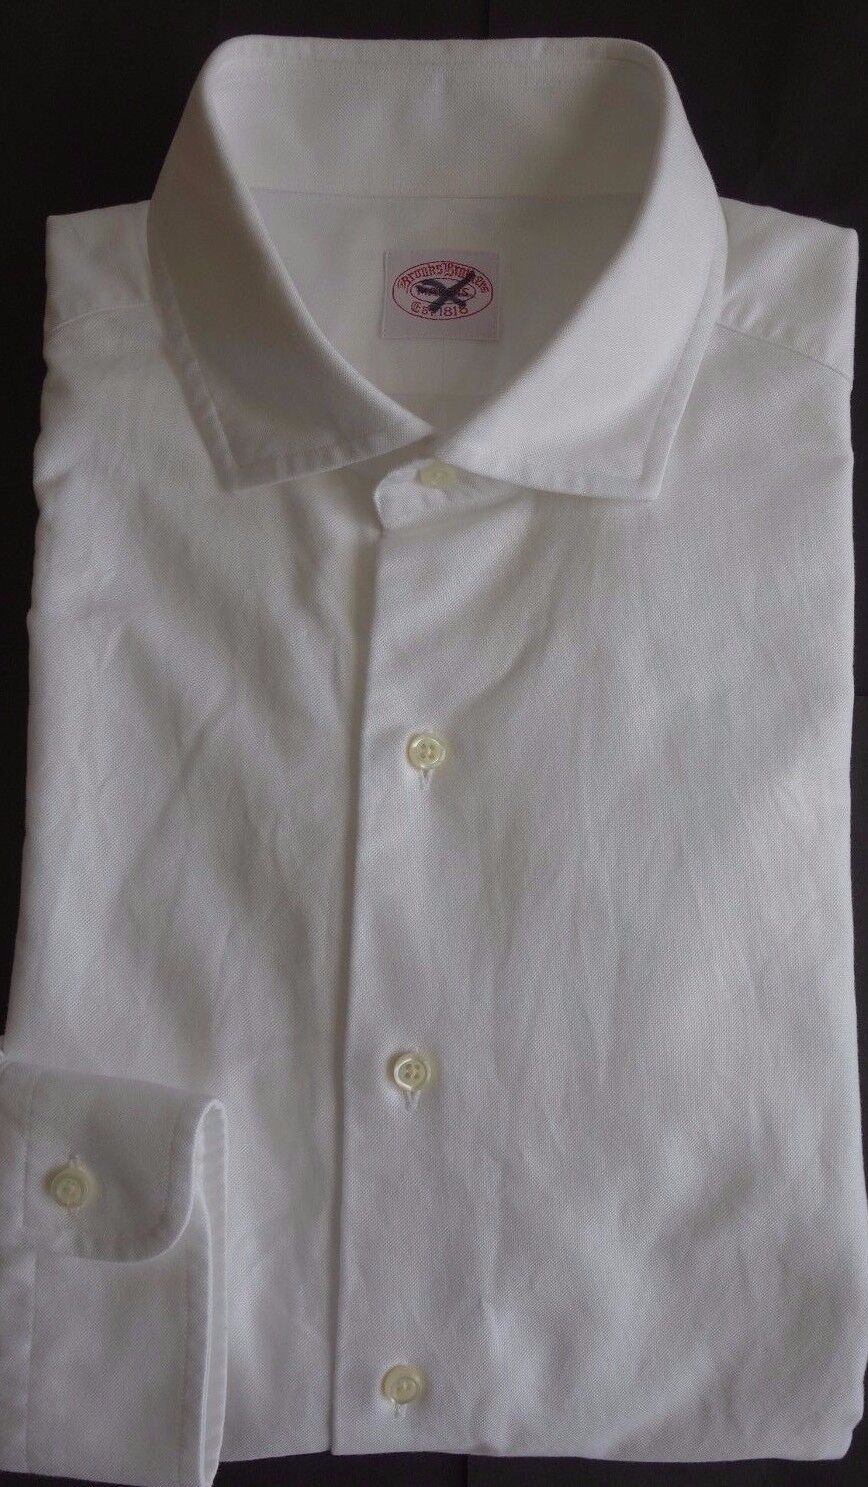 NWT Brooks Bredhers White Oxford Cloth Spread Collar Shirt 15.5-36 MSRP